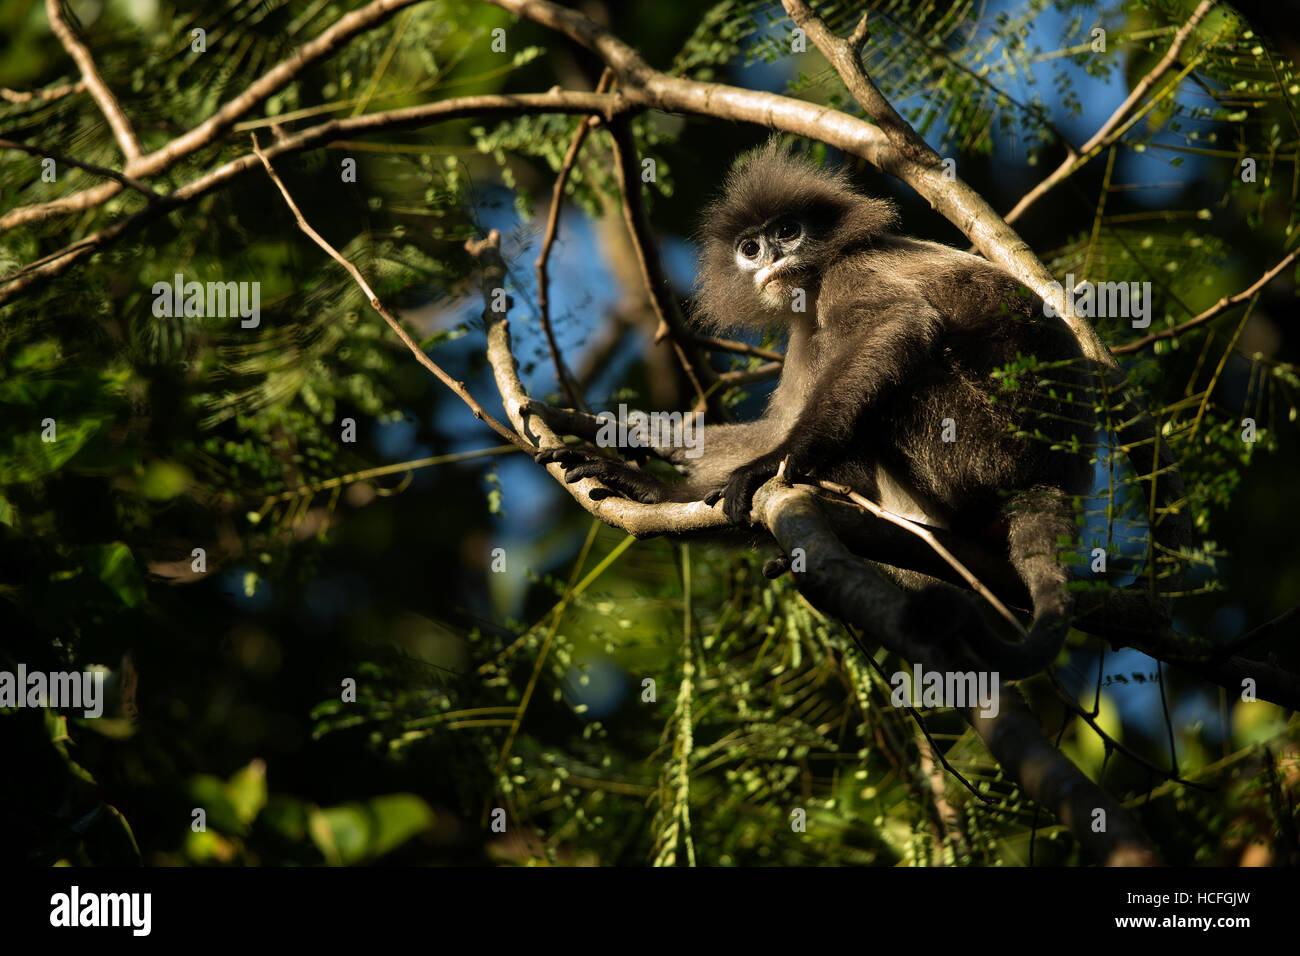 Phyr's leaf monkey or spectacled macaque or spectacled langur in the wild in Tripura, India - Stock Image